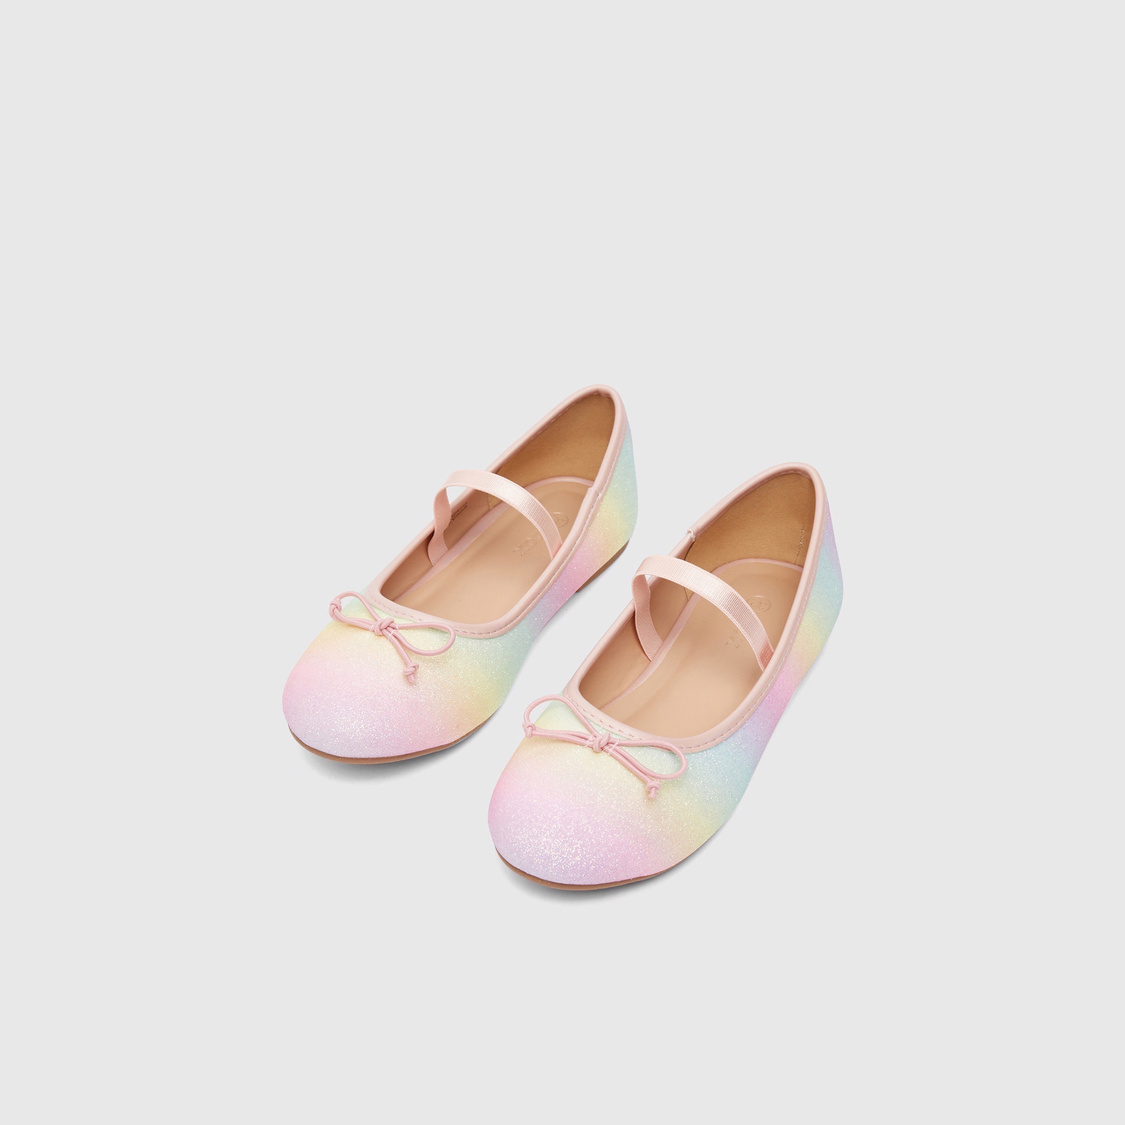 Textured Ballerinas with Bow Applique and Elasticised Band